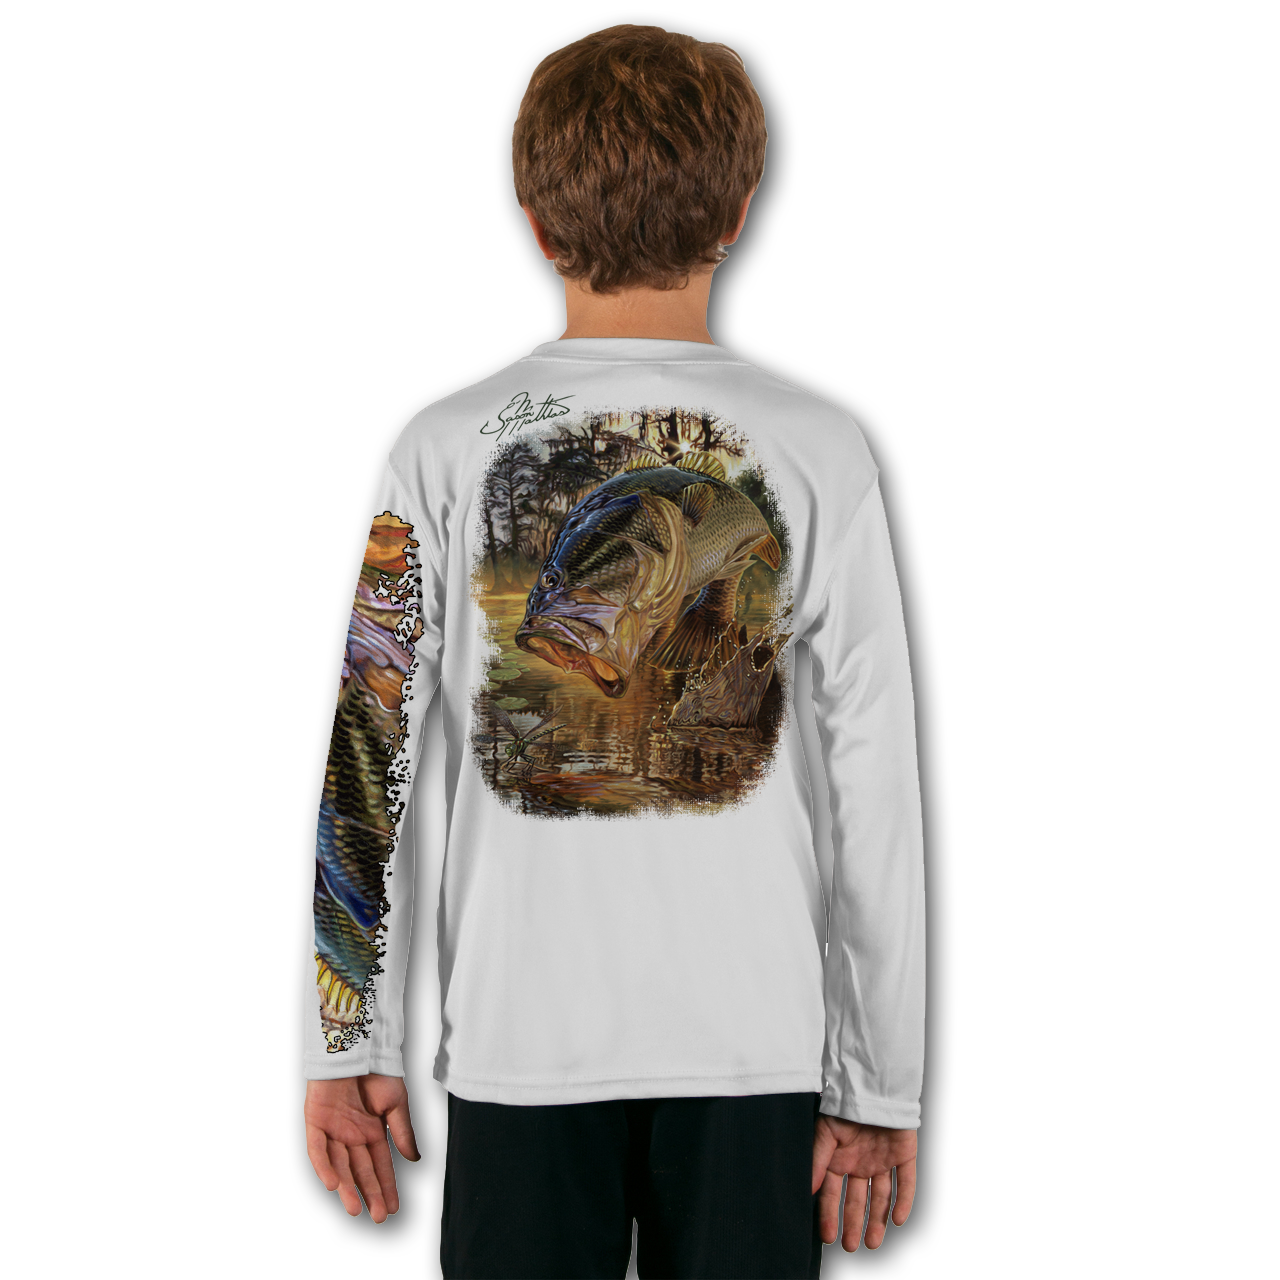 bass-white-youth-solar-ls-back-performance-shirt.png